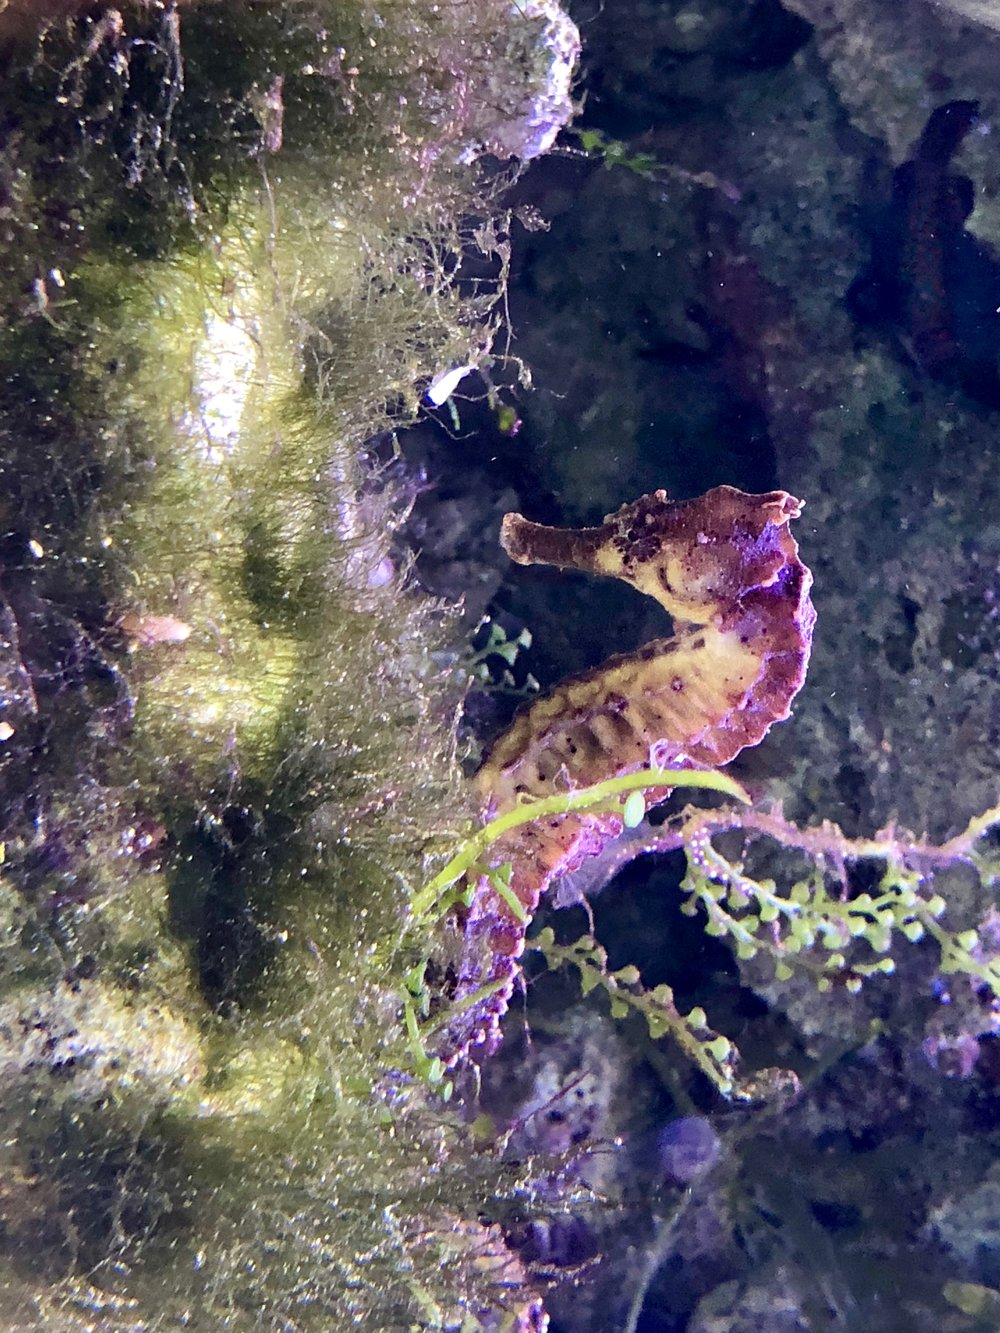 Seahorse photo by Dianna Cohen.